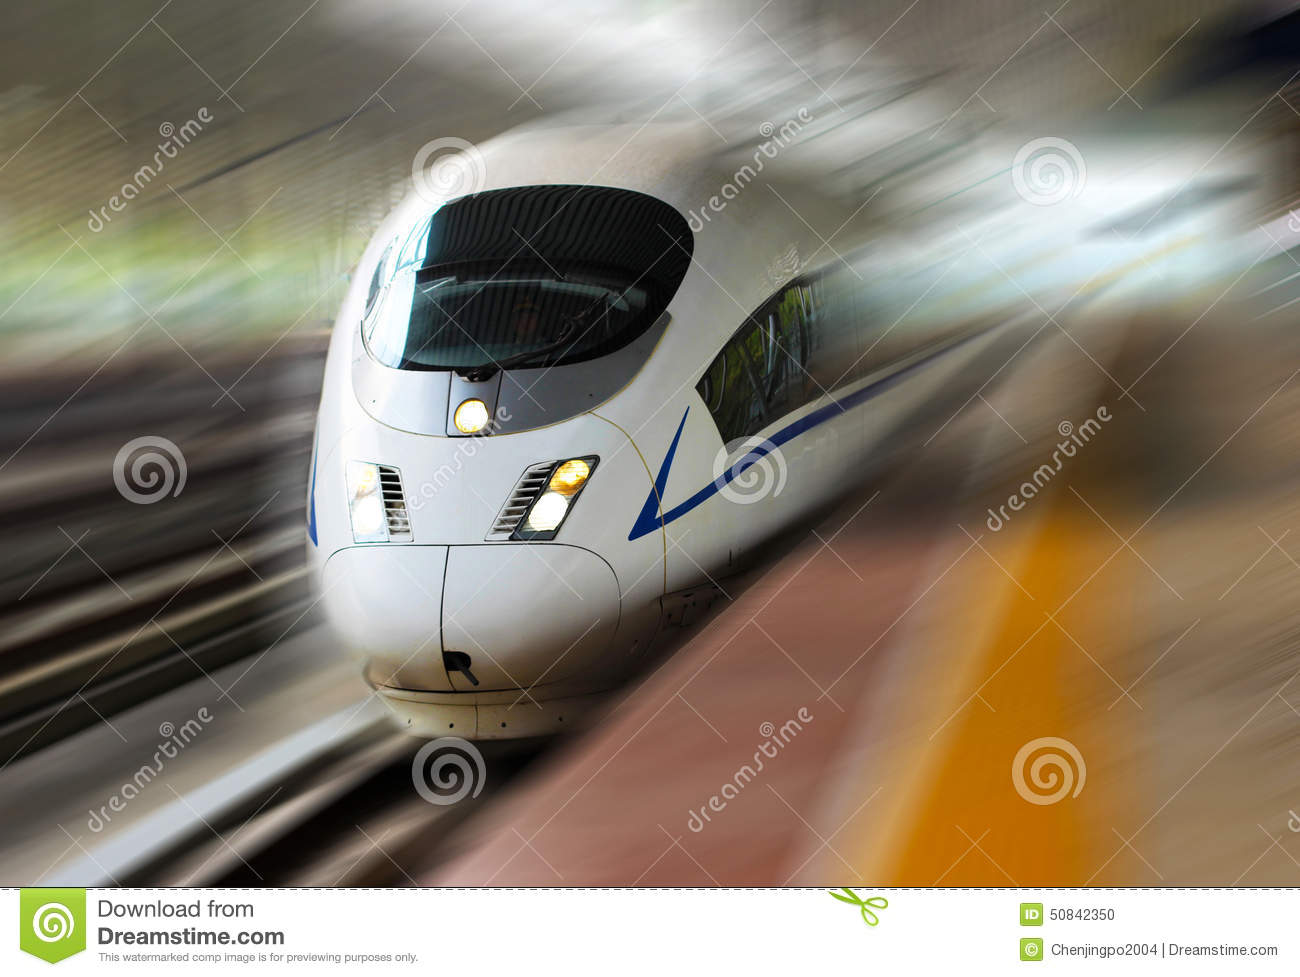 Barcelona To Madrid High Speed Train Travel Time